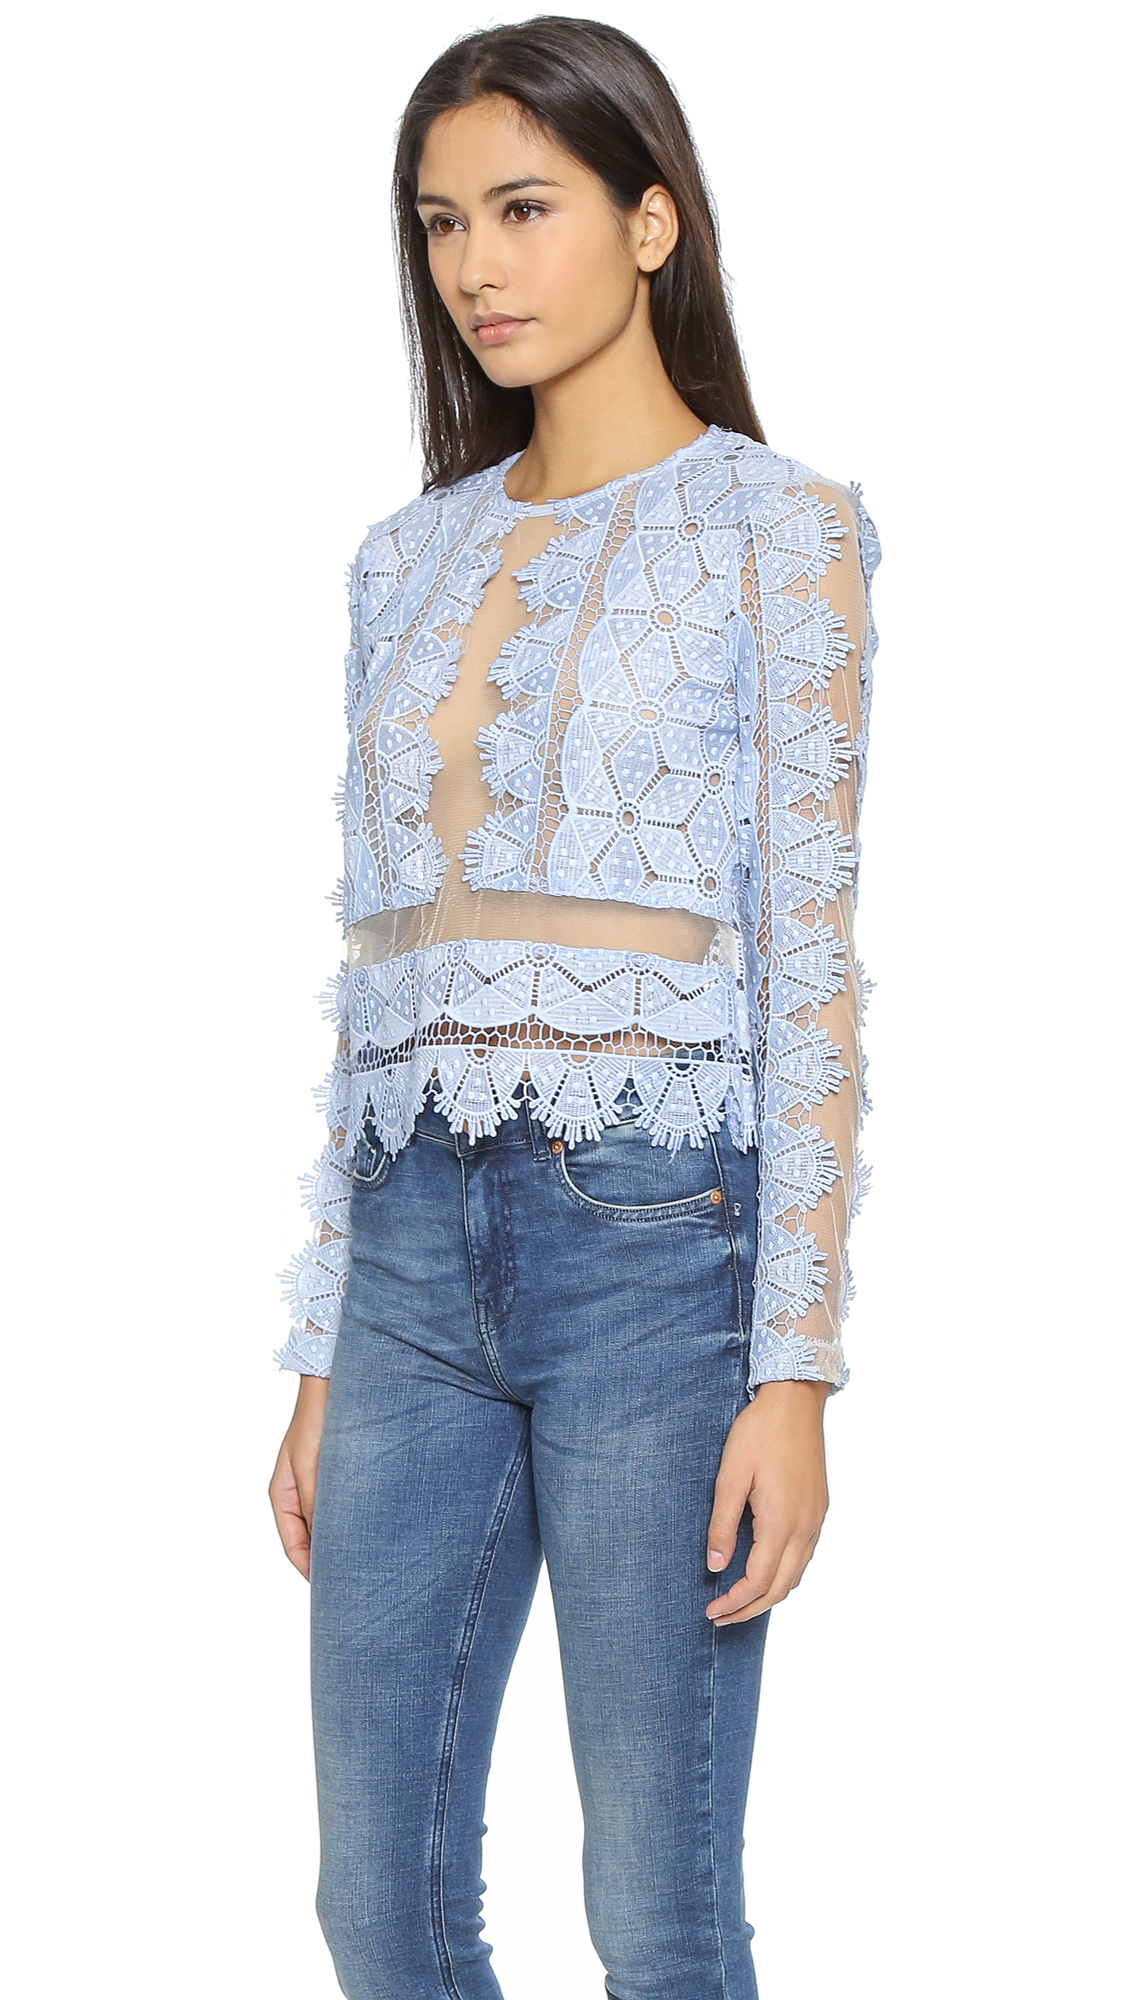 bbb6713510 Endless Rose Lace Blouse in Blue - Lyst